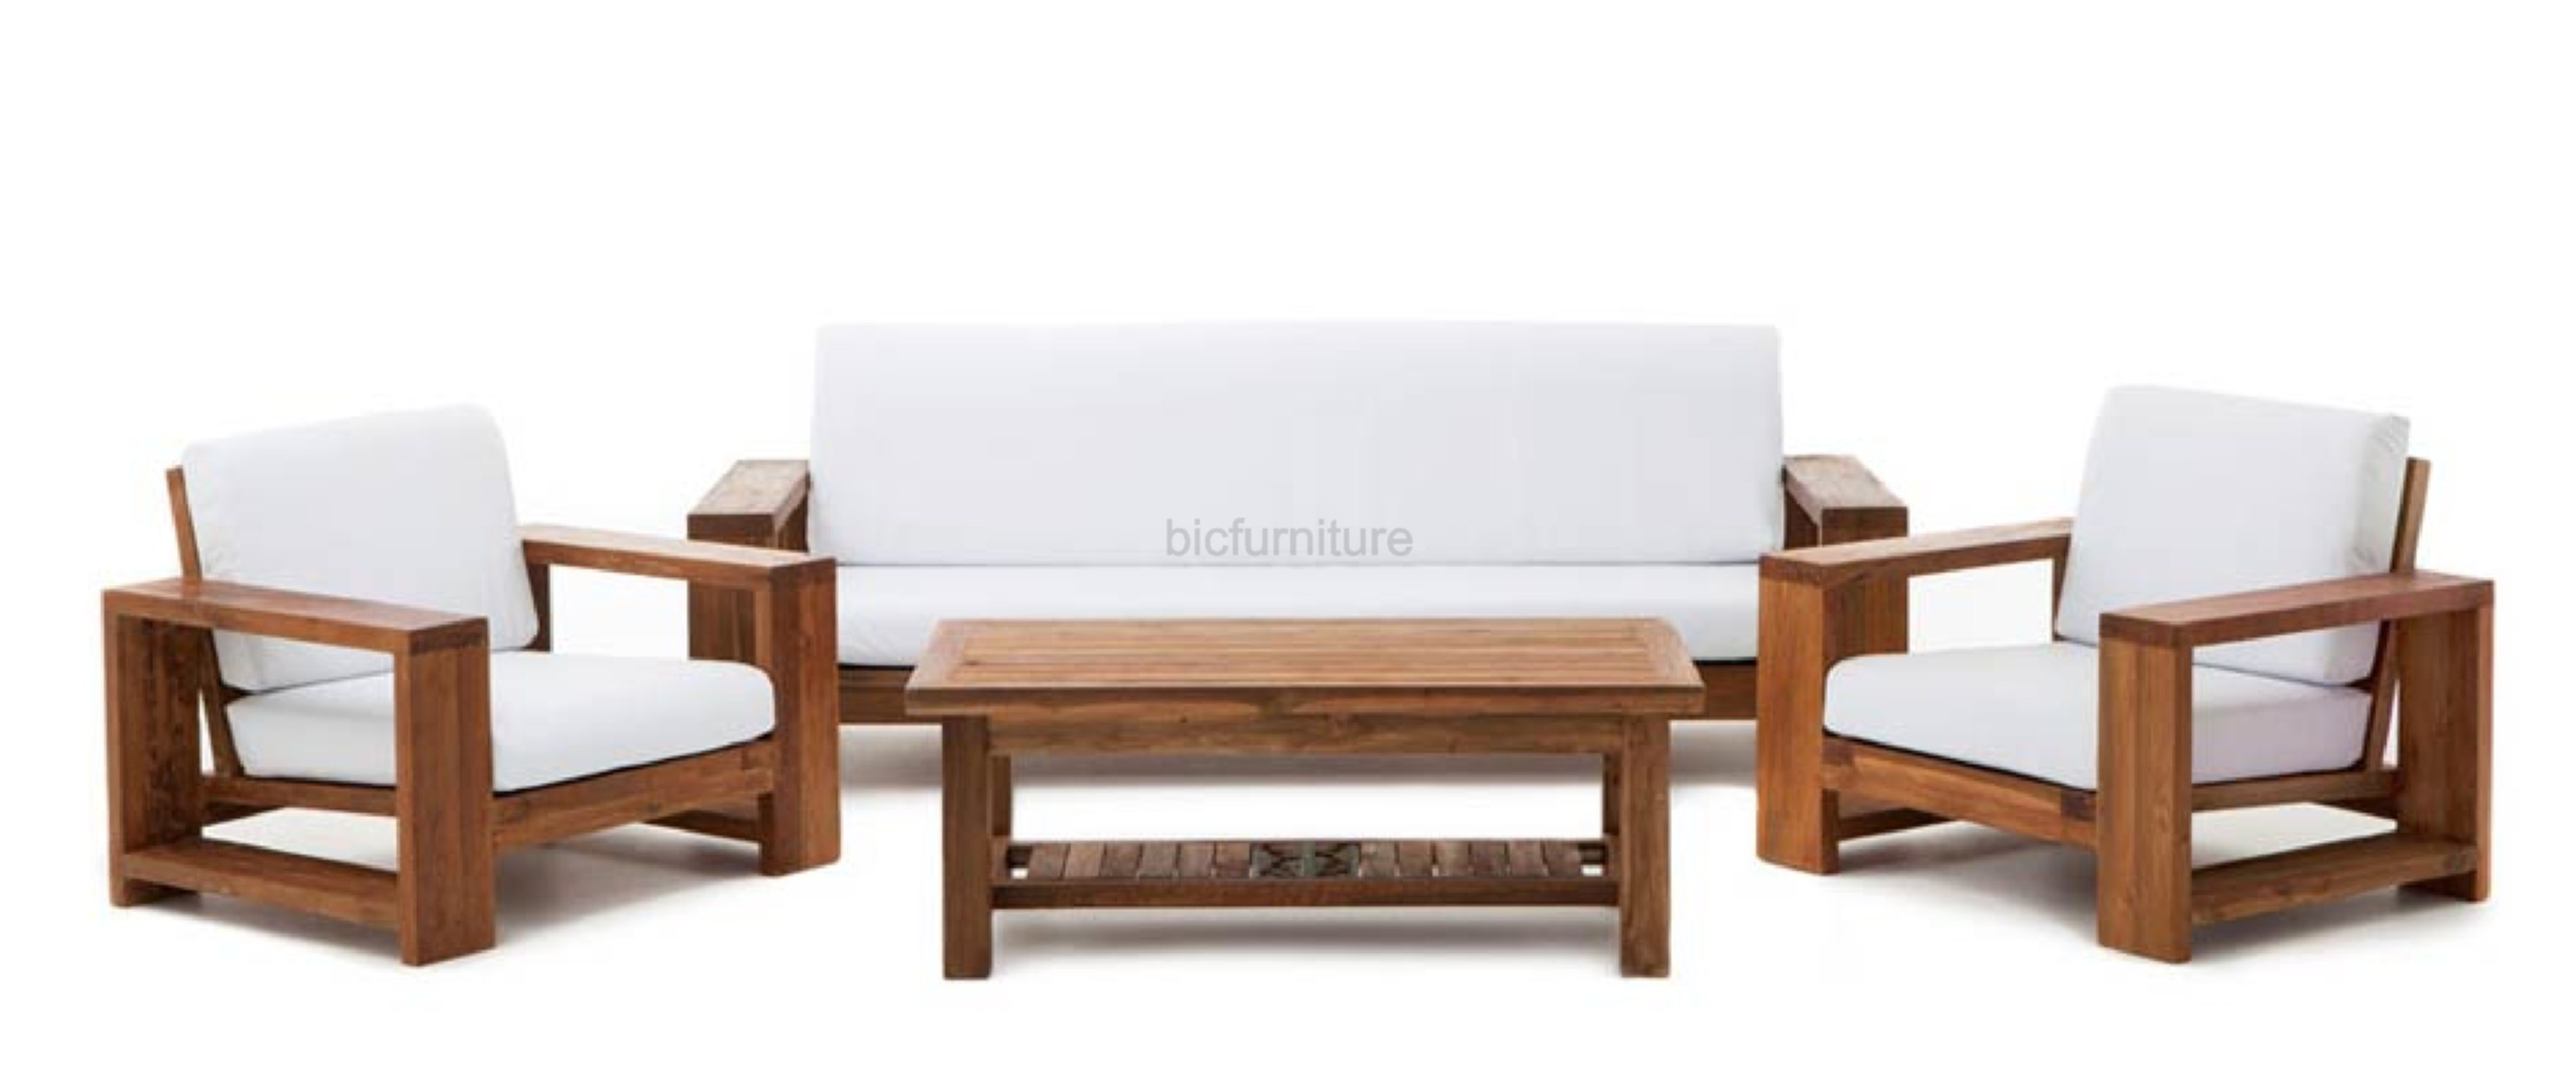 Ws 77 Comfortable Sofa Set In Teakwood Details Bic Furniture India